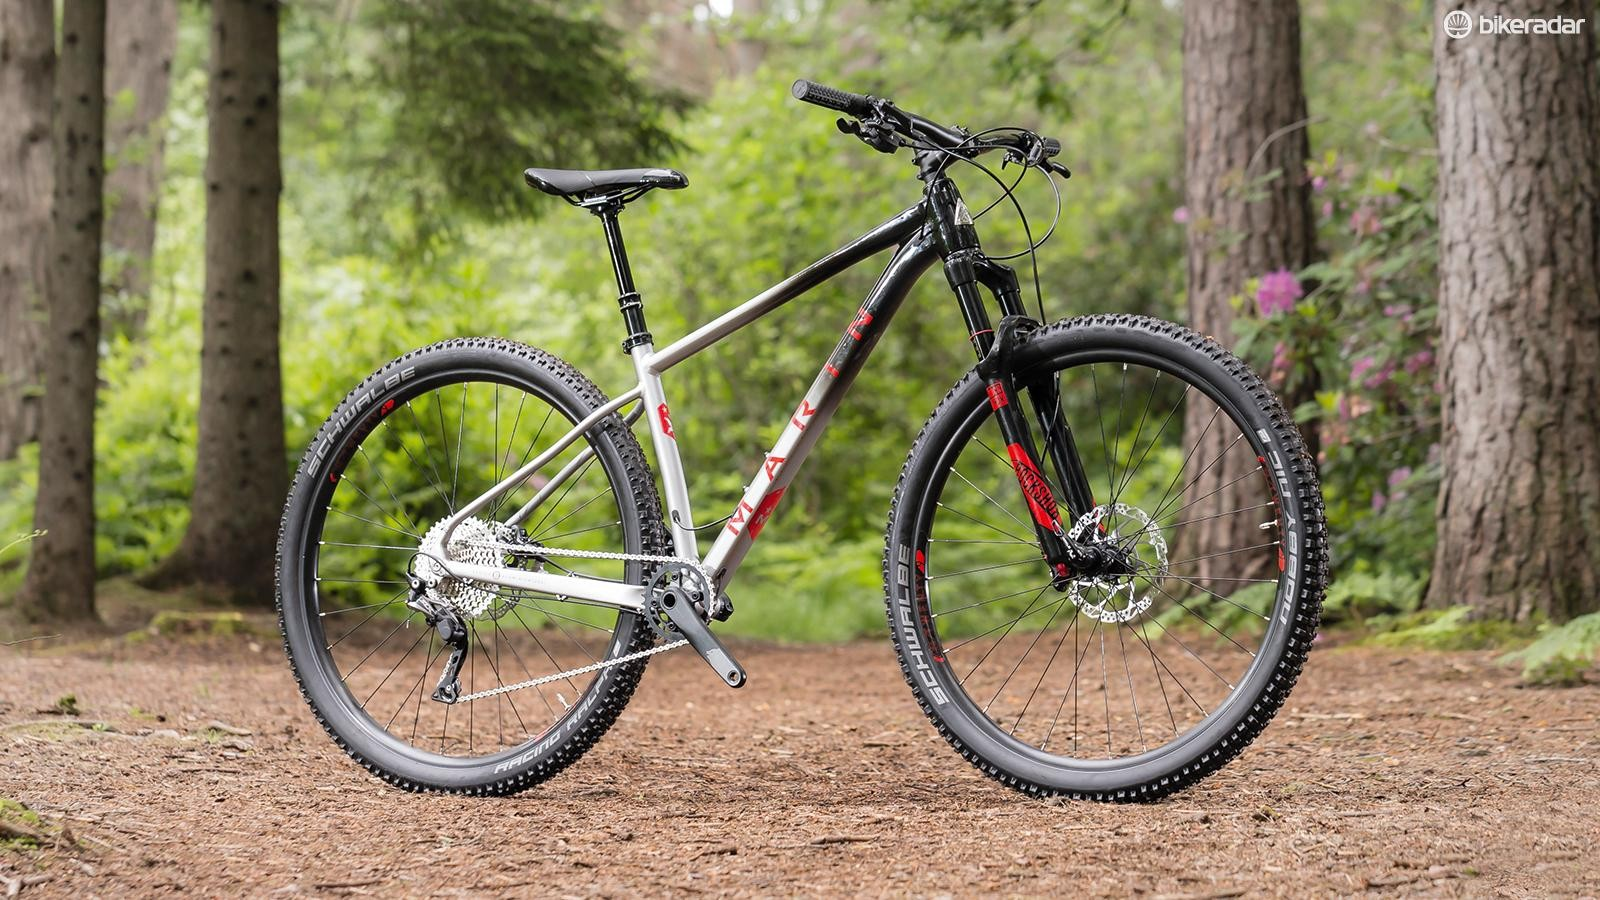 Marin's Nail Trail 9 now sets the performance benchmark in its segment